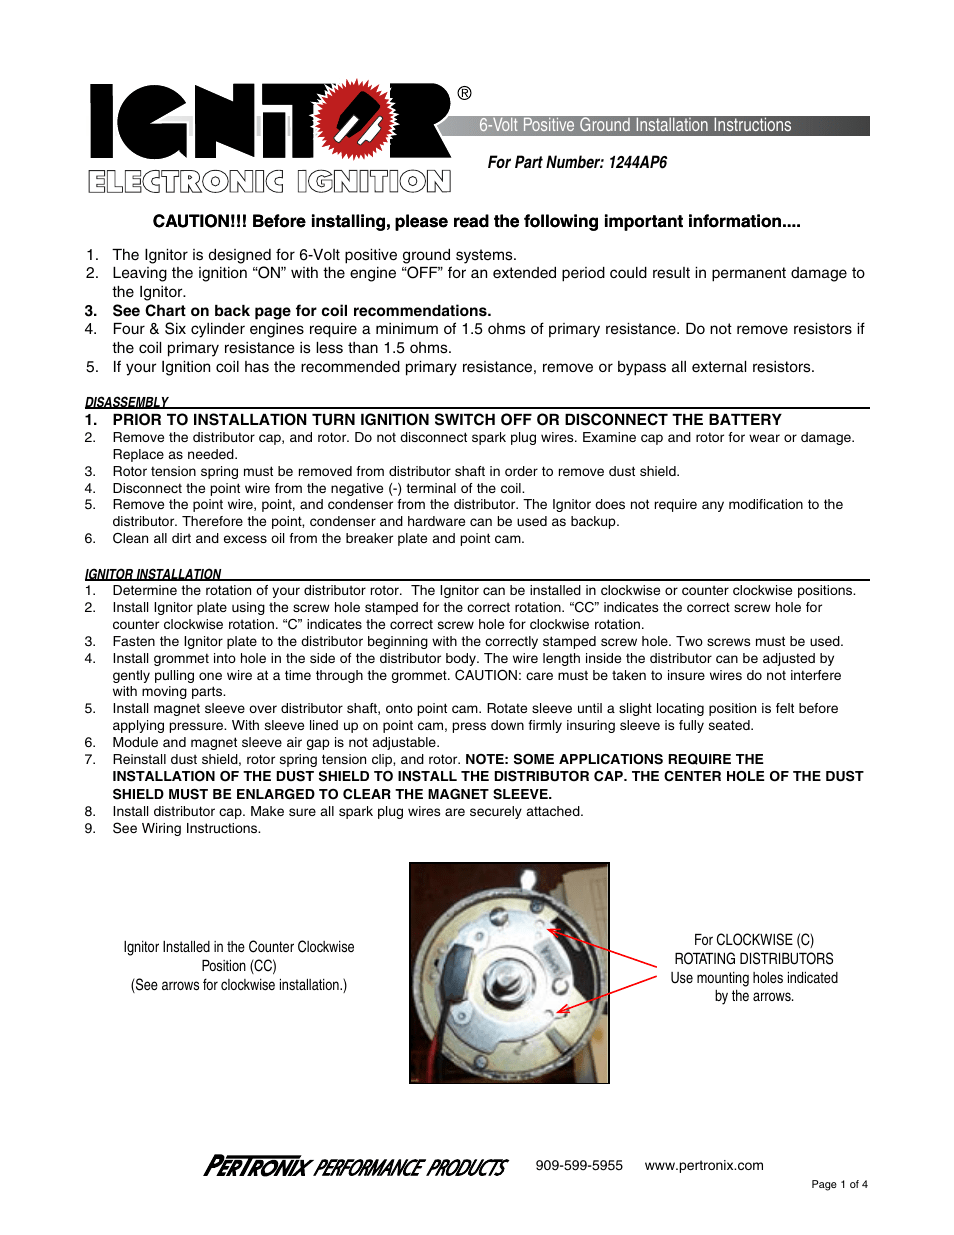 hight resolution of pertronix ignitor 1244ap6 user manual volt positive ground installation instructions